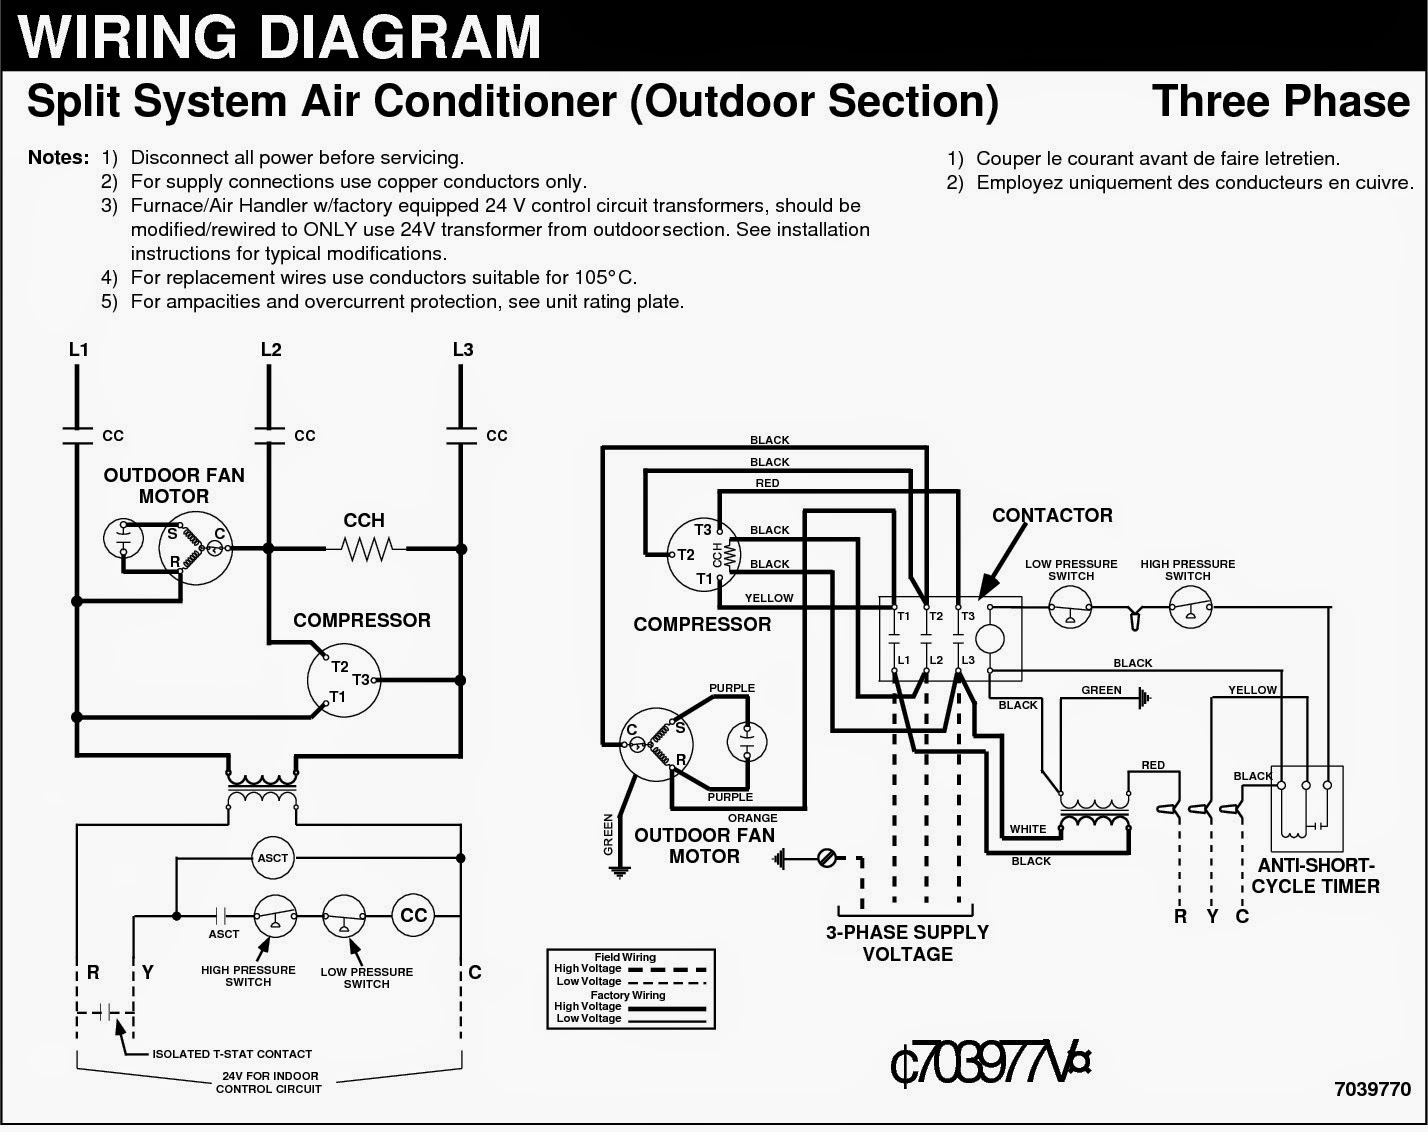 electrical wiring diagrams for air conditioning systems part two rh electrical knowhow com Car AC Diagram Car Audio System Wiring Diagram